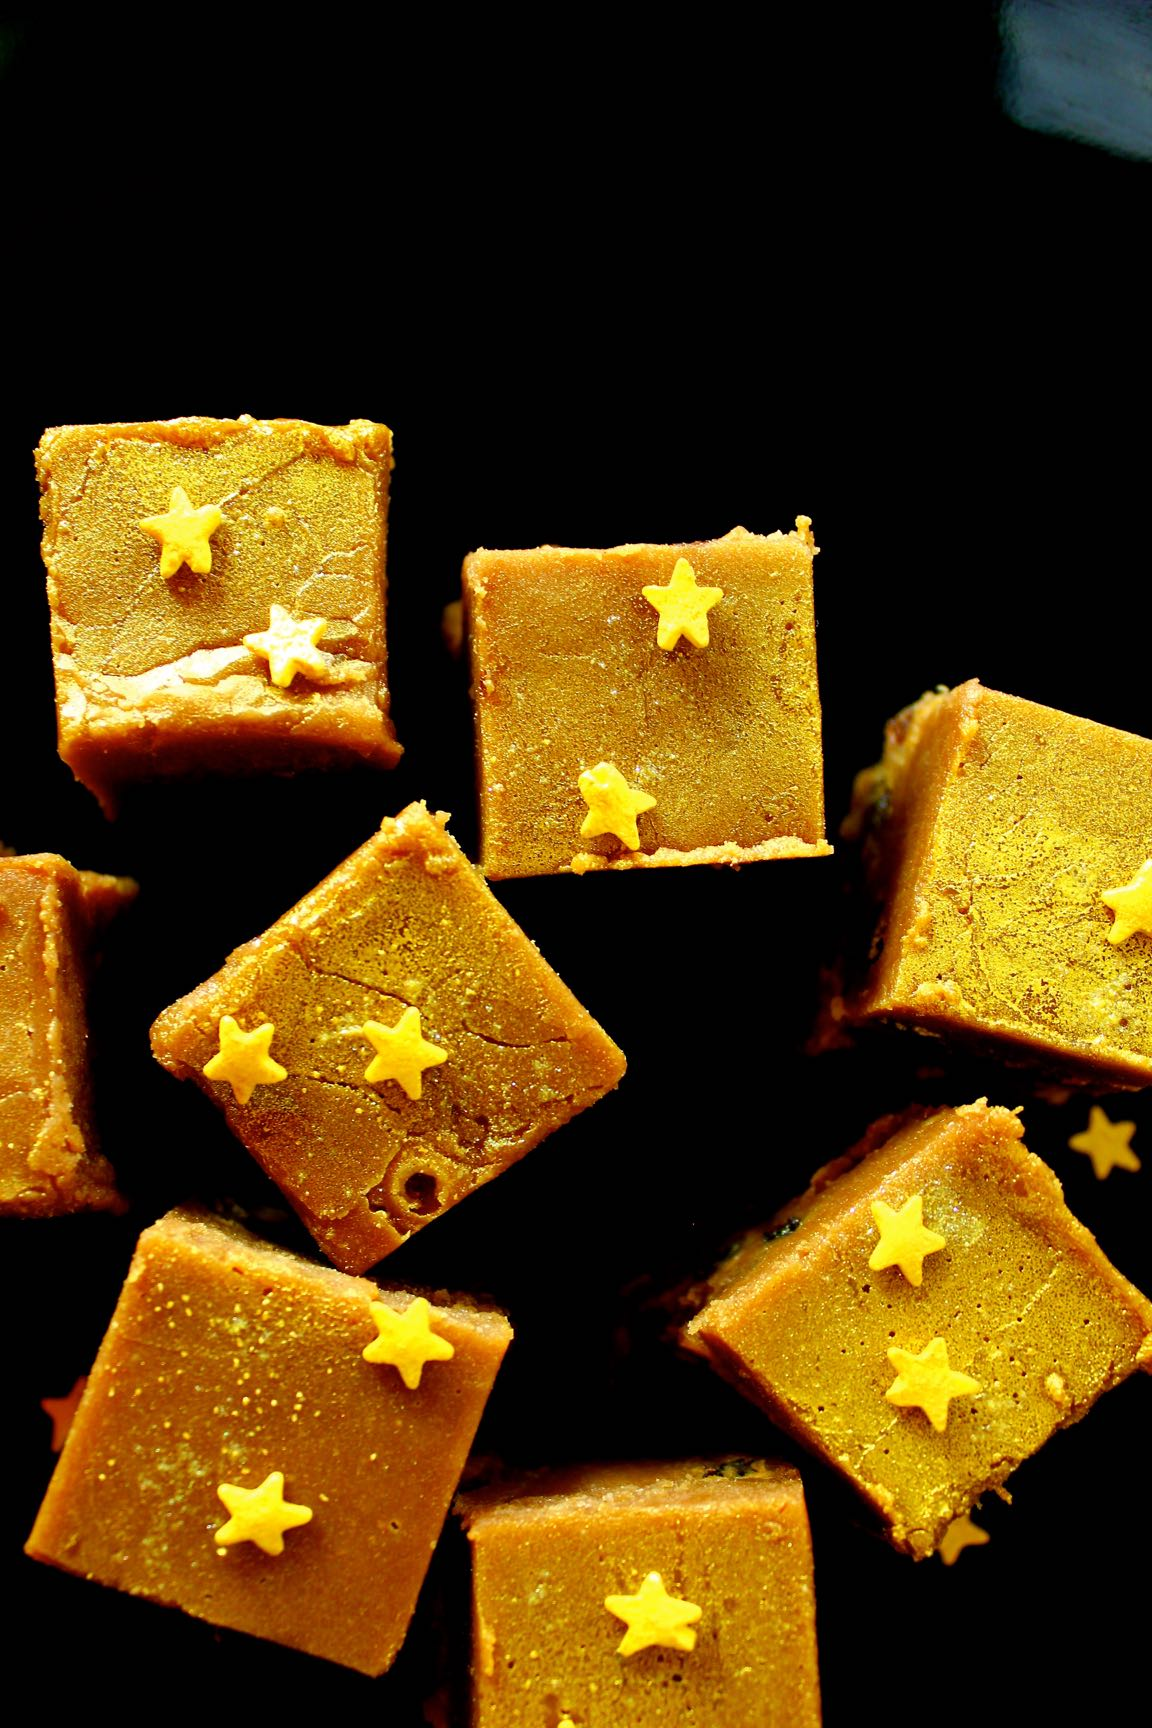 Fudge topped with sugar stars and sprayed with edible glitter.